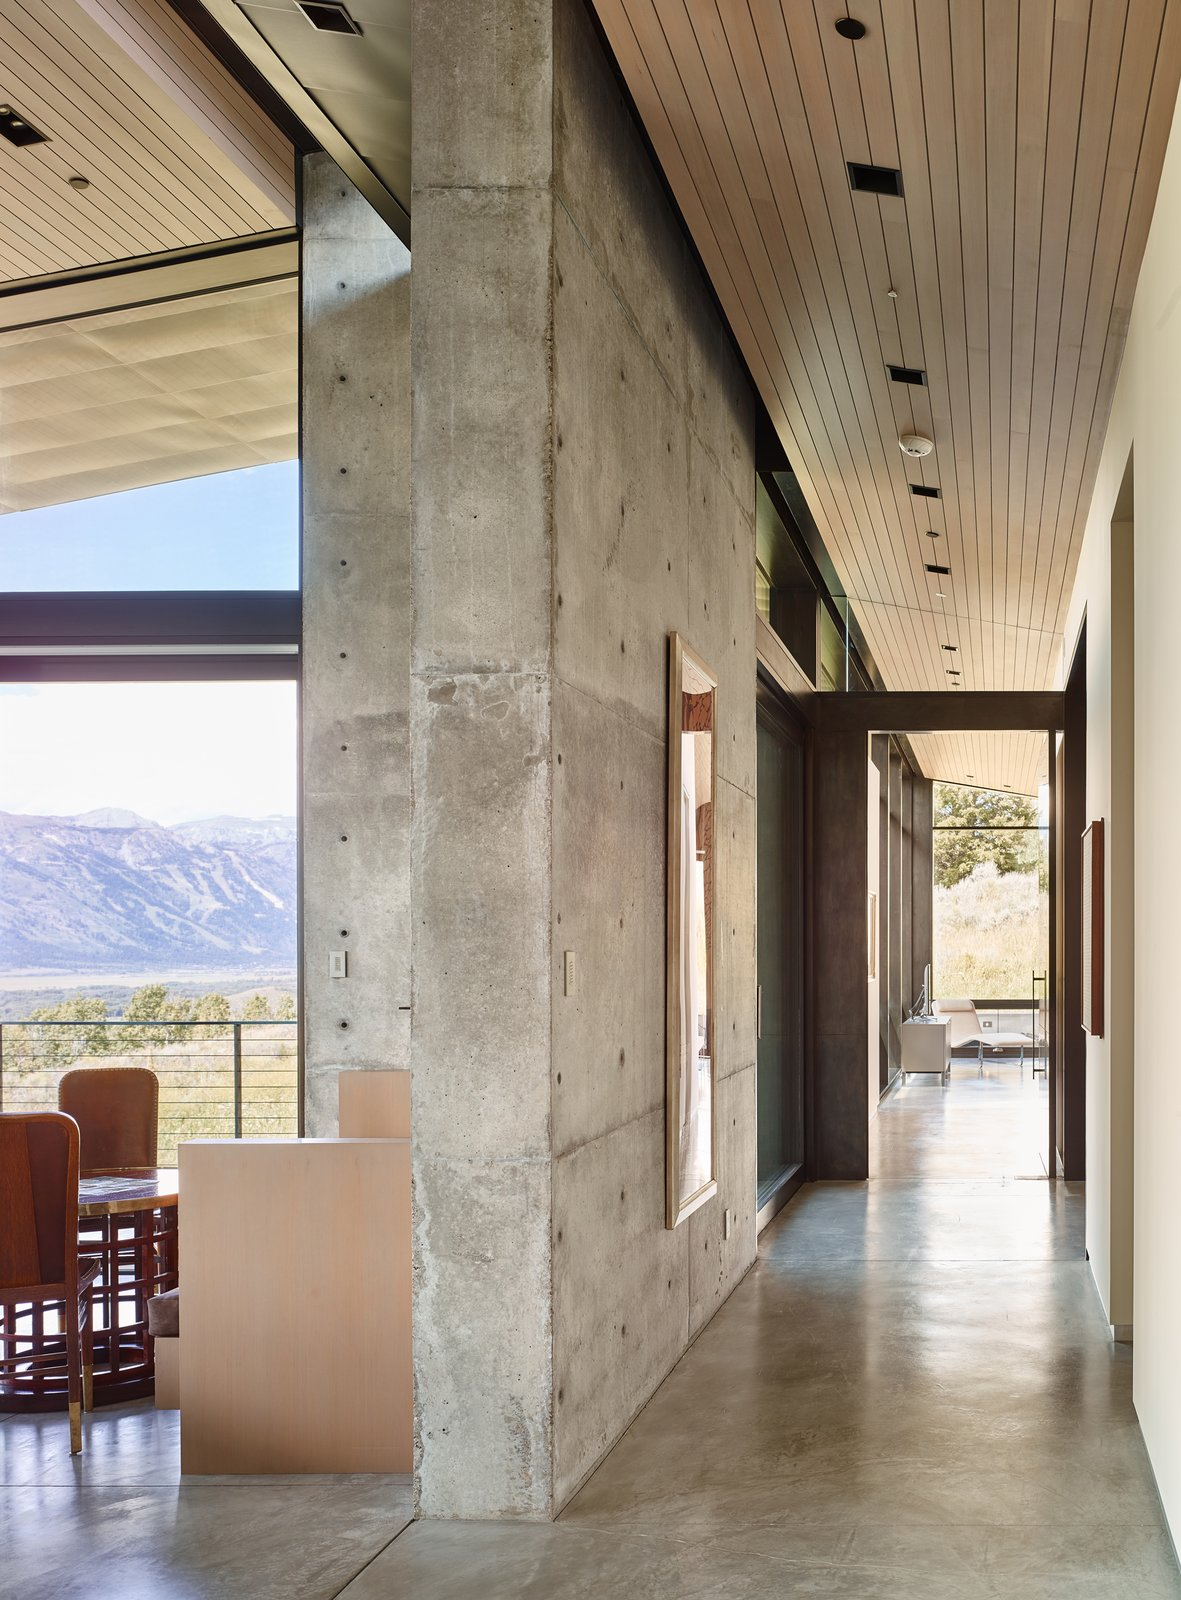 Once inside, natural light serves as an important material layered amongst its solid counterparts. Wood ceilings sit slightly pulled back from the walls to create a feeling of expansiveness.  Tagged: Hallway and Concrete Floor.  Wyoming Residence by Abramson Teiger Architects